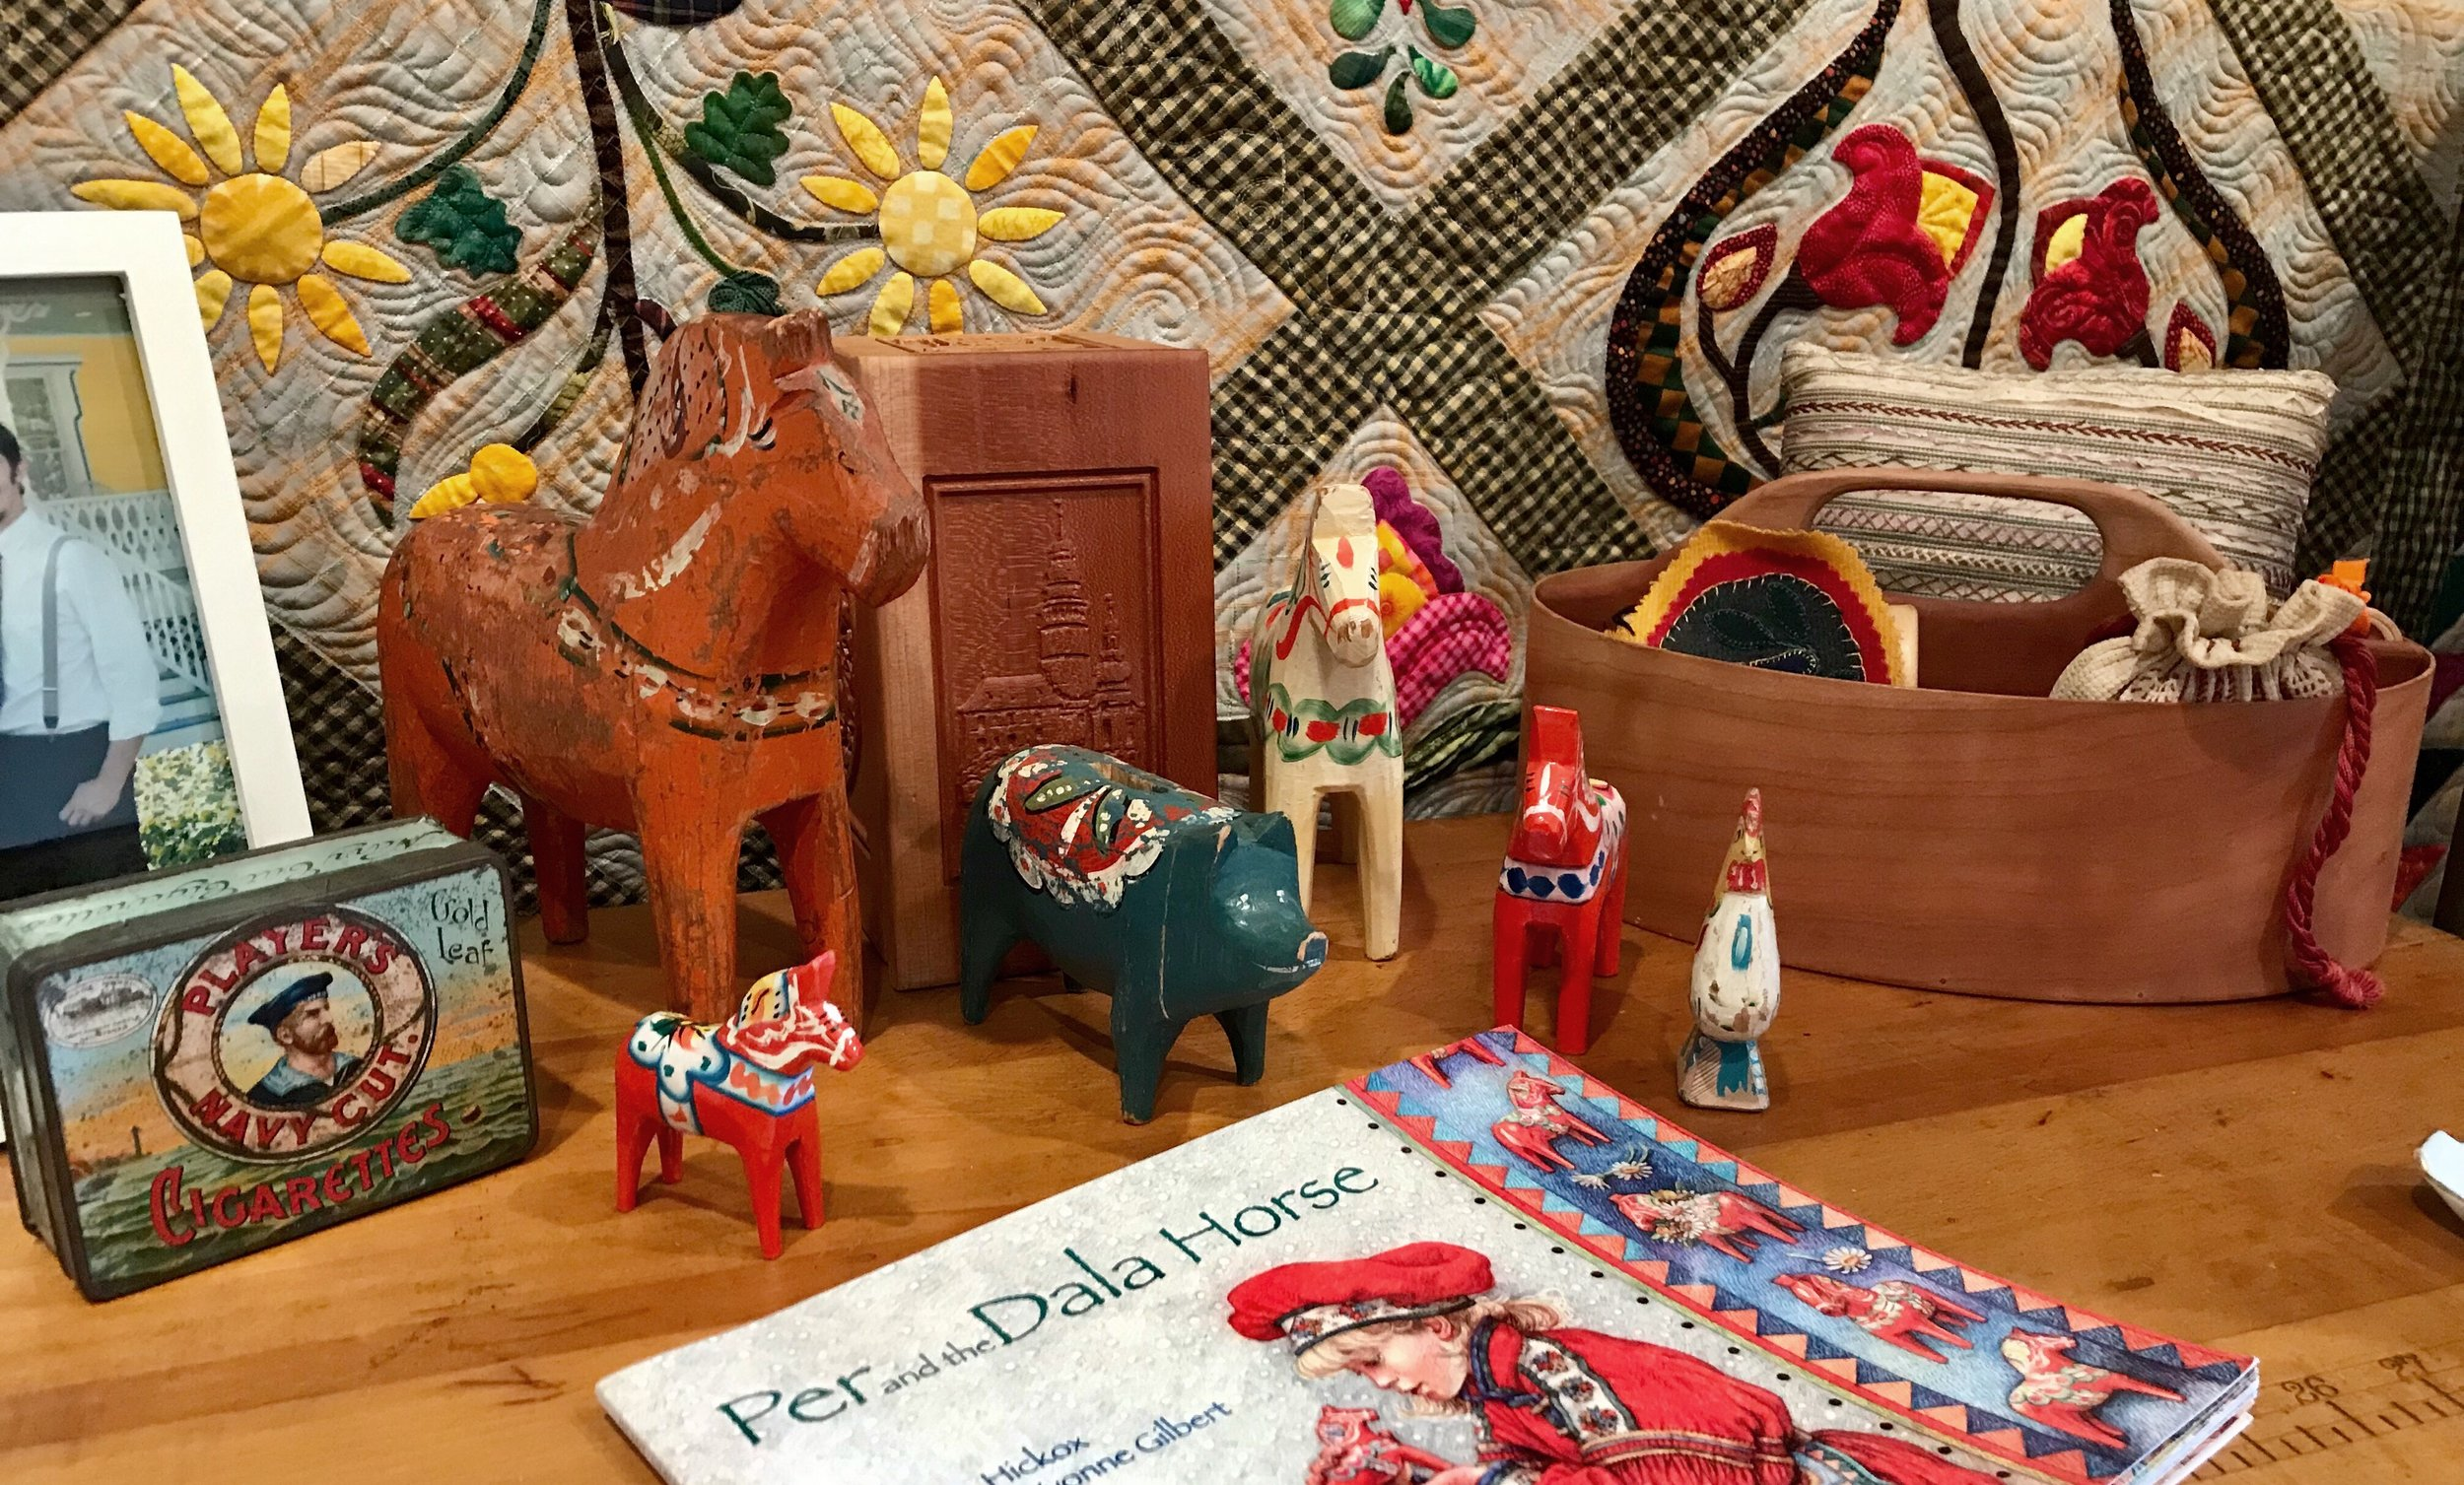 A collection of Dala horses and other treasures from Sweden passed down from Carl's side of the family